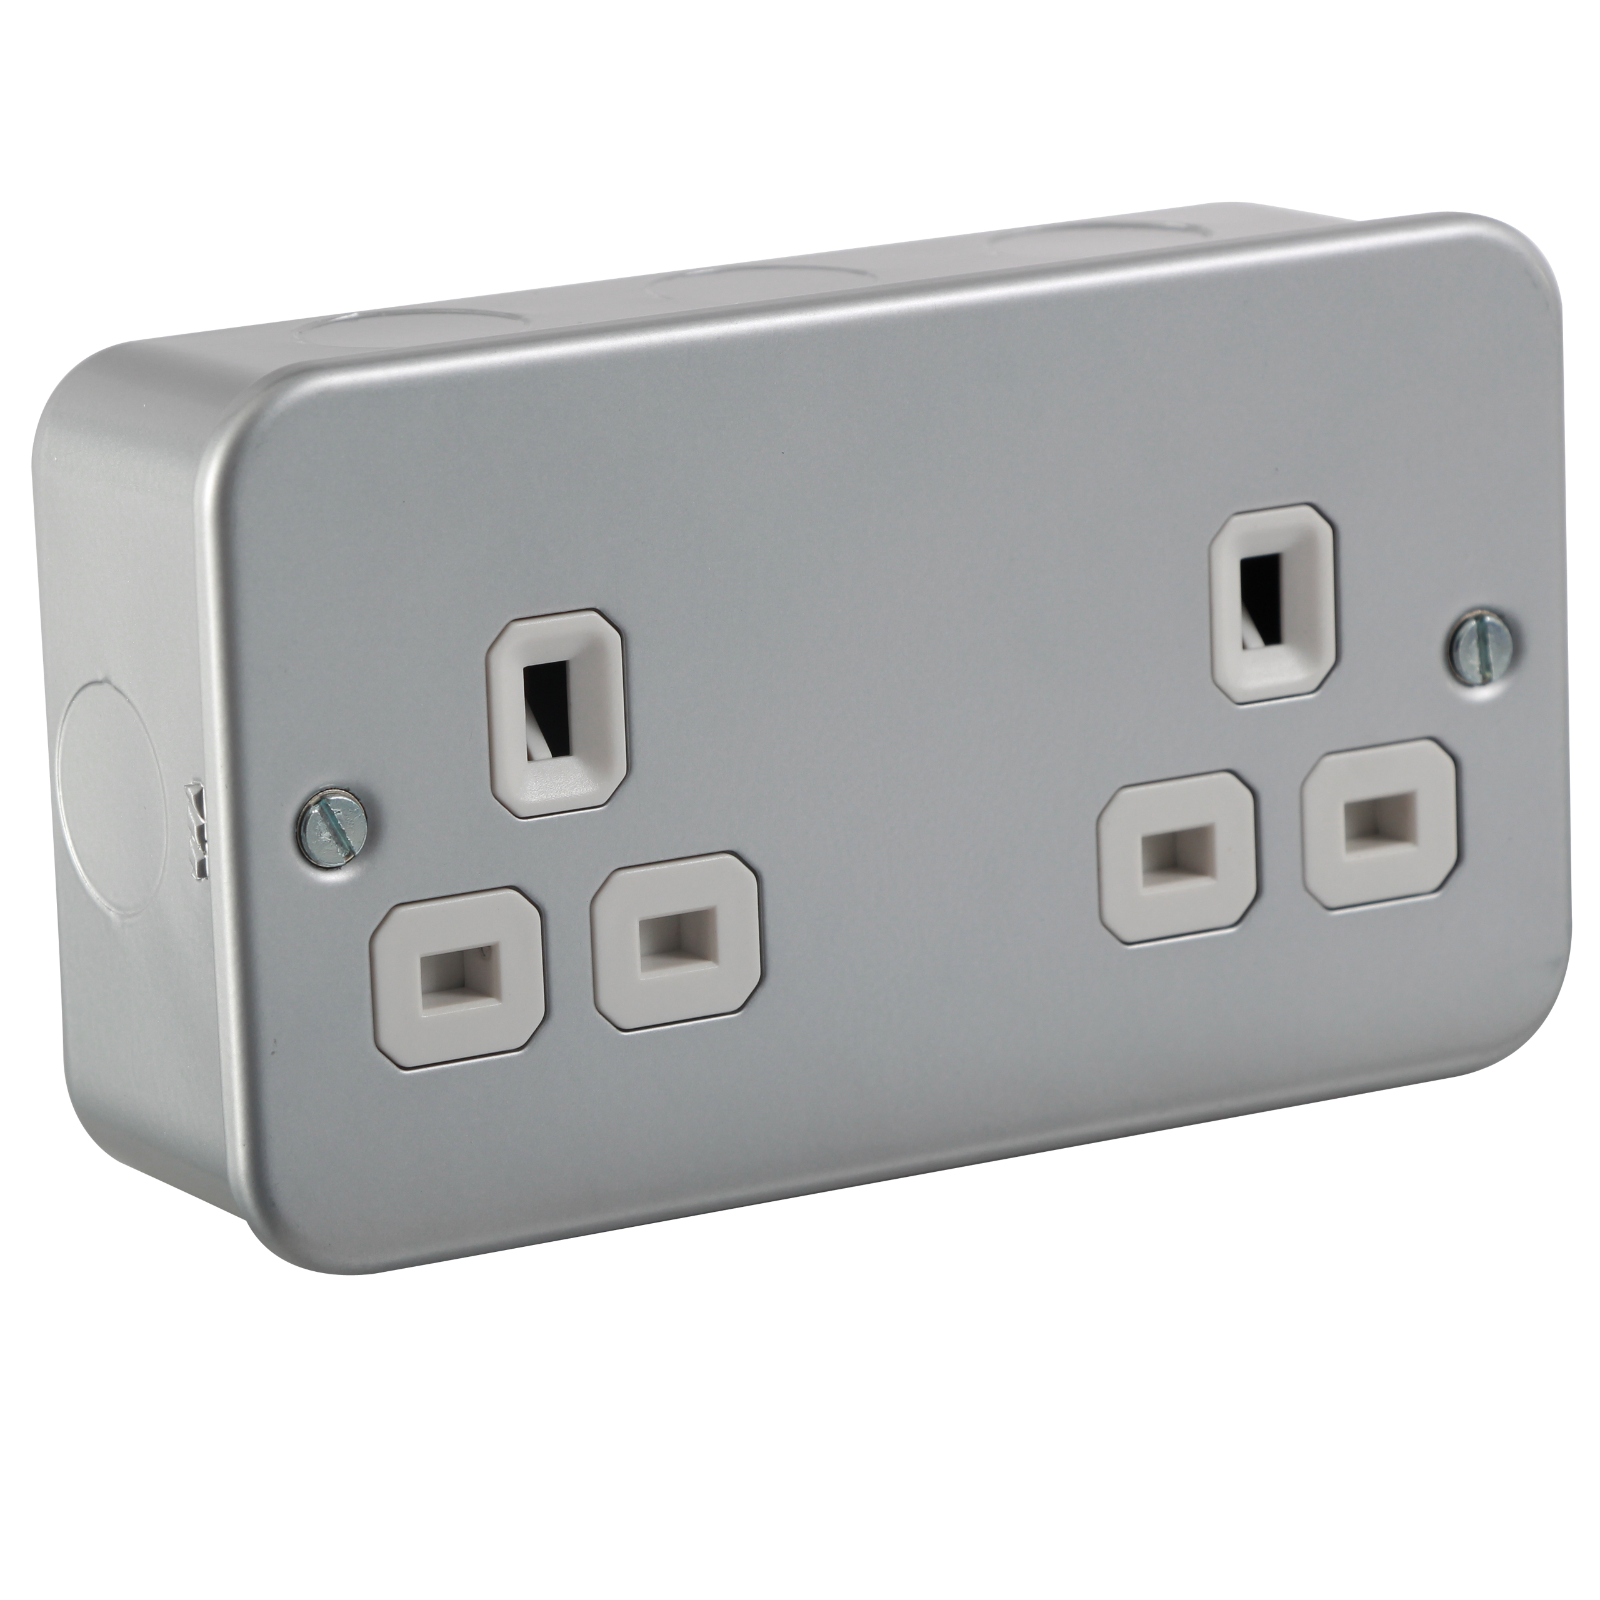 METAL CLAD 13A 2G UNSWITCHED SOCKET